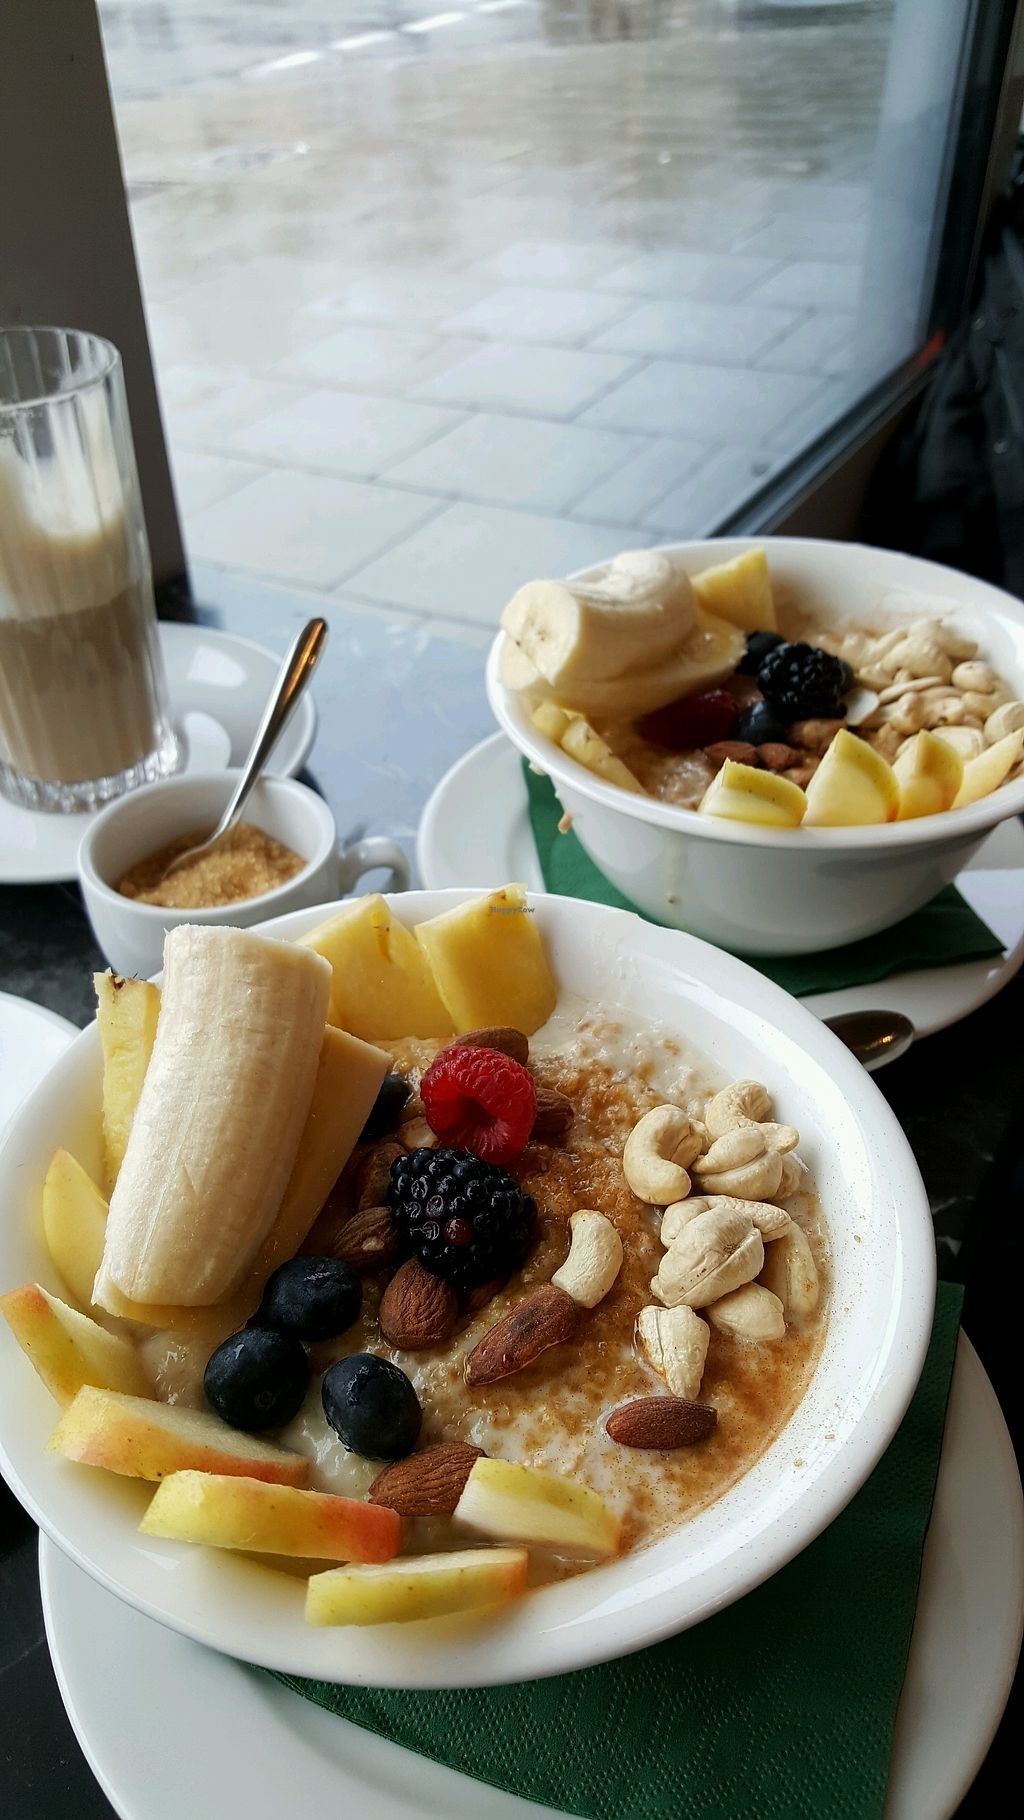 """Photo of Wagners Juicery & Health Food  by <a href=""""/members/profile/Fianna"""">Fianna</a> <br/>Porridge ? <br/> November 21, 2017  - <a href='/contact/abuse/image/103356/327772'>Report</a>"""